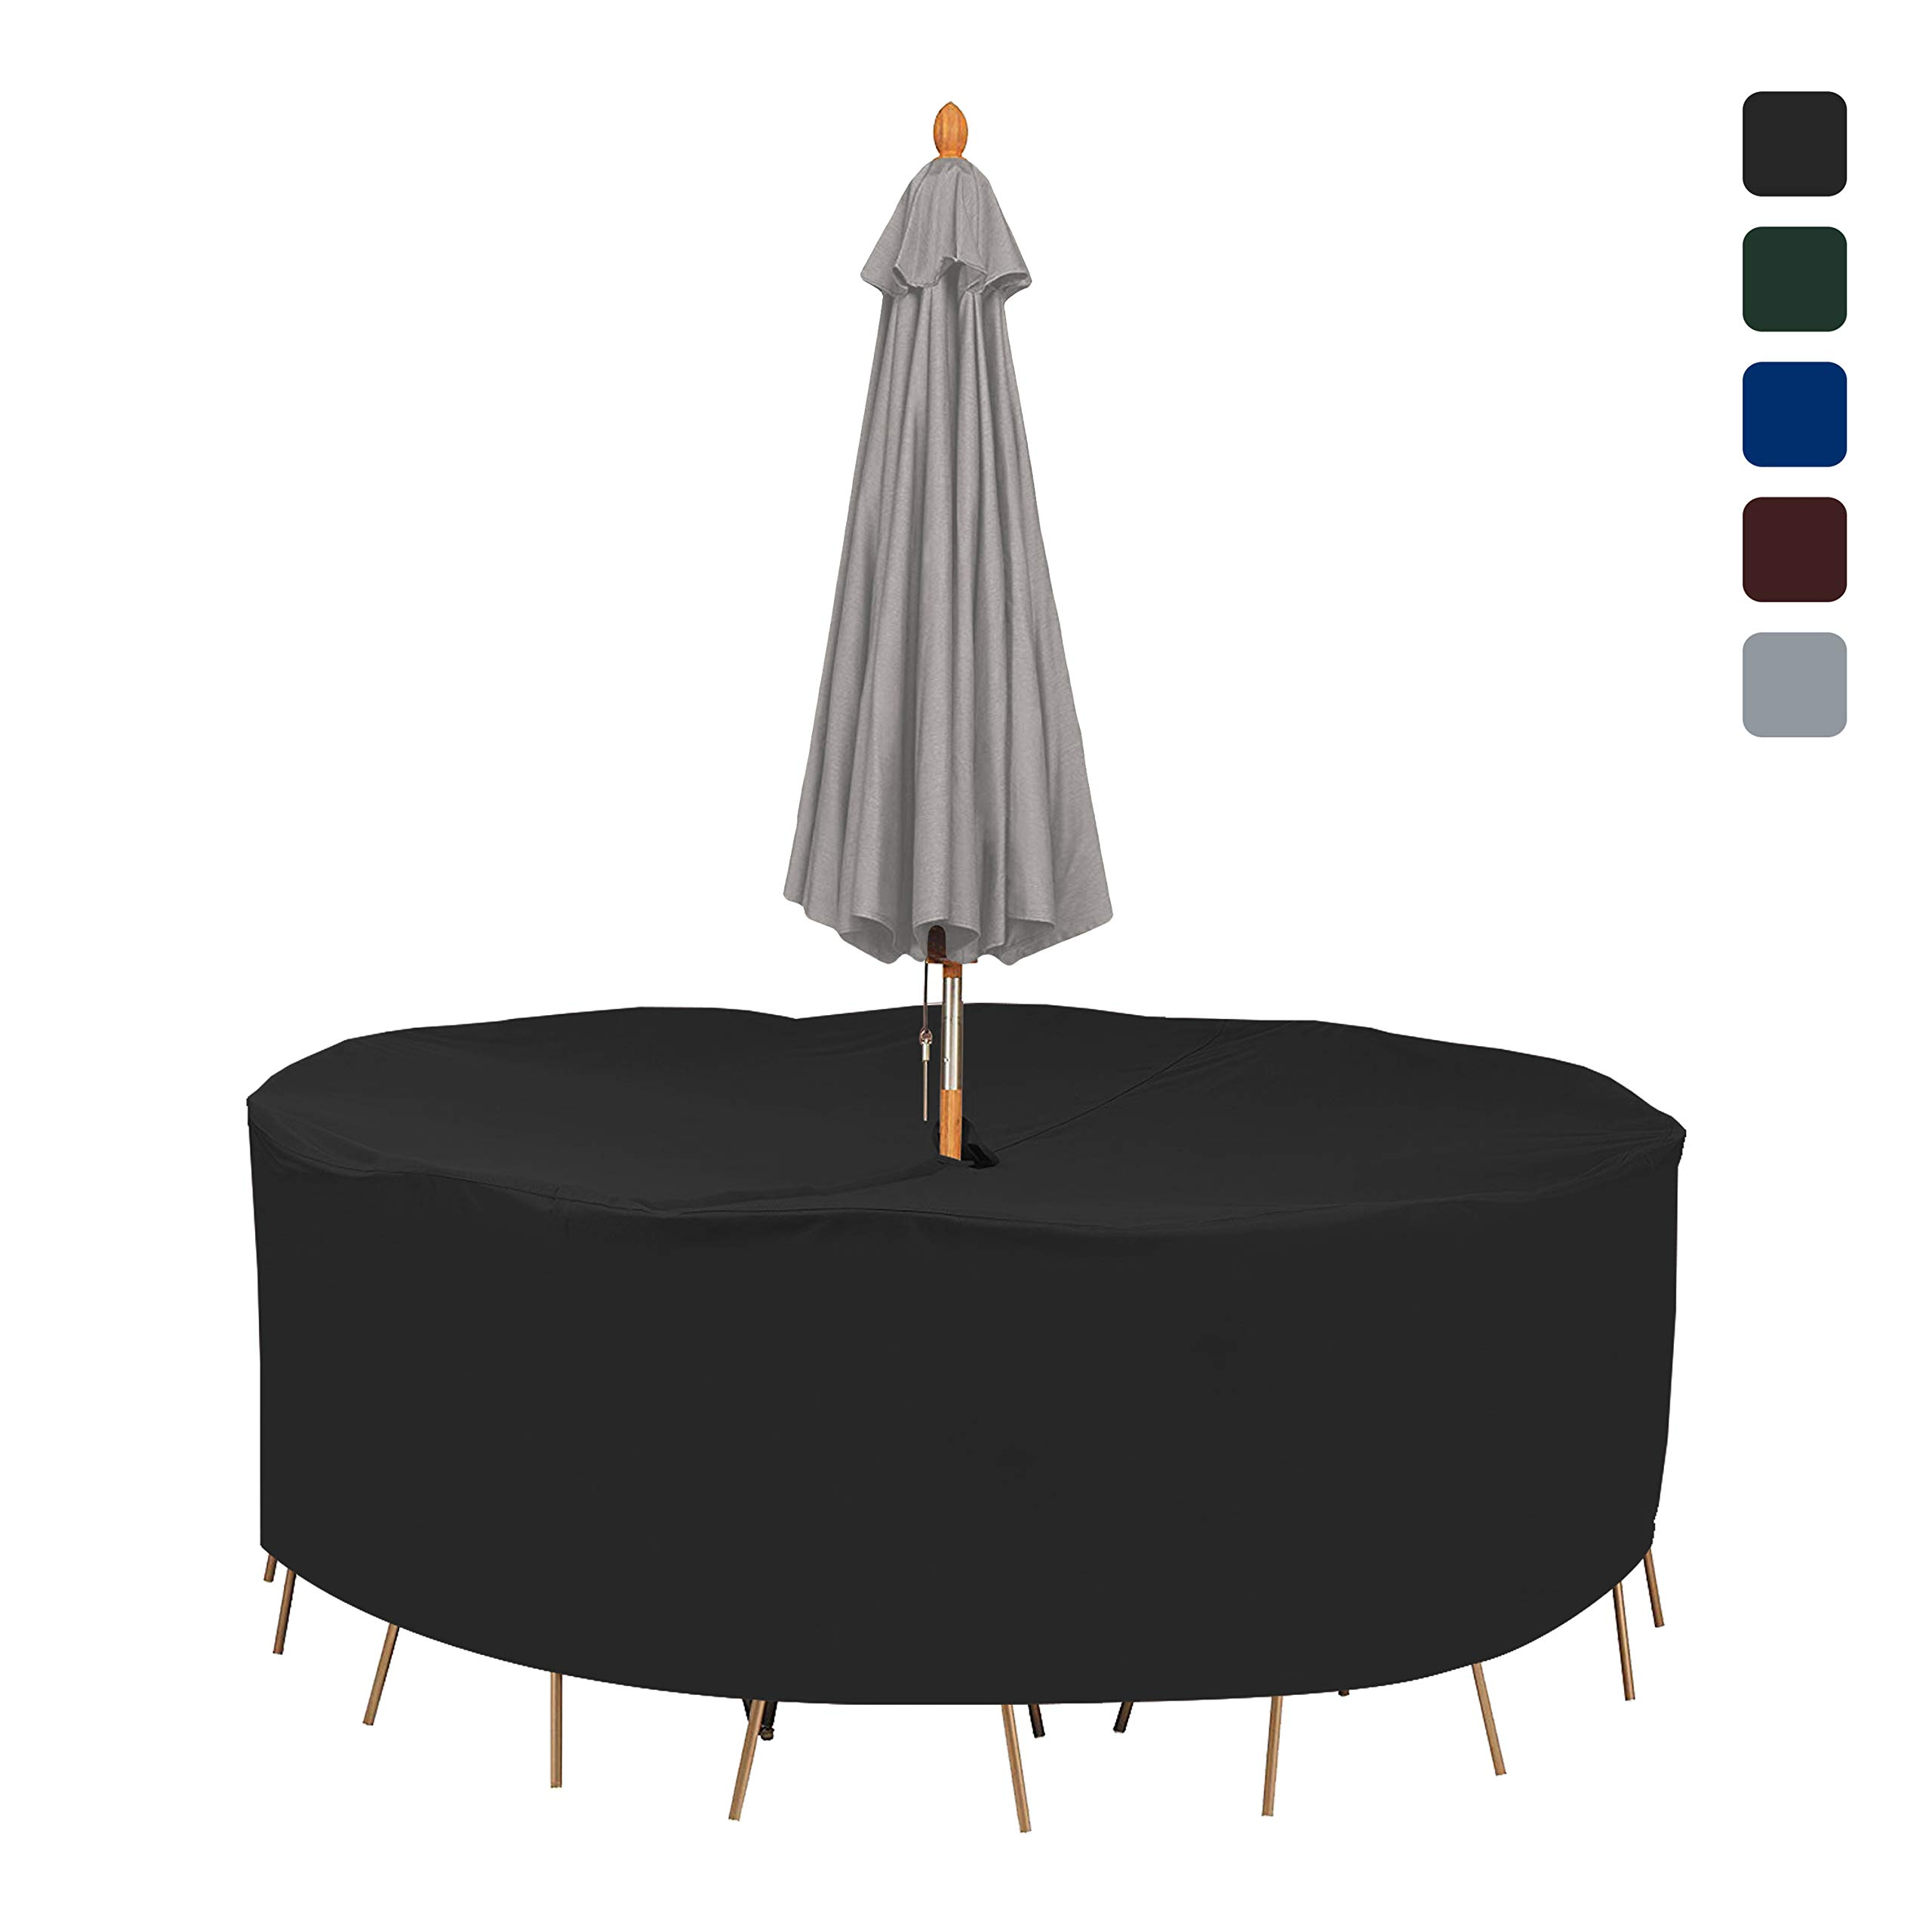 Patio Round Table & Chair Set Cover with Umbrella Hole 18 Oz Waterproof - 100% UV & Weather Resistant Outdoor Table Cover with Air Pocket and Drawstring for Snug Fit (94'' Dia x 30'' H, Black)